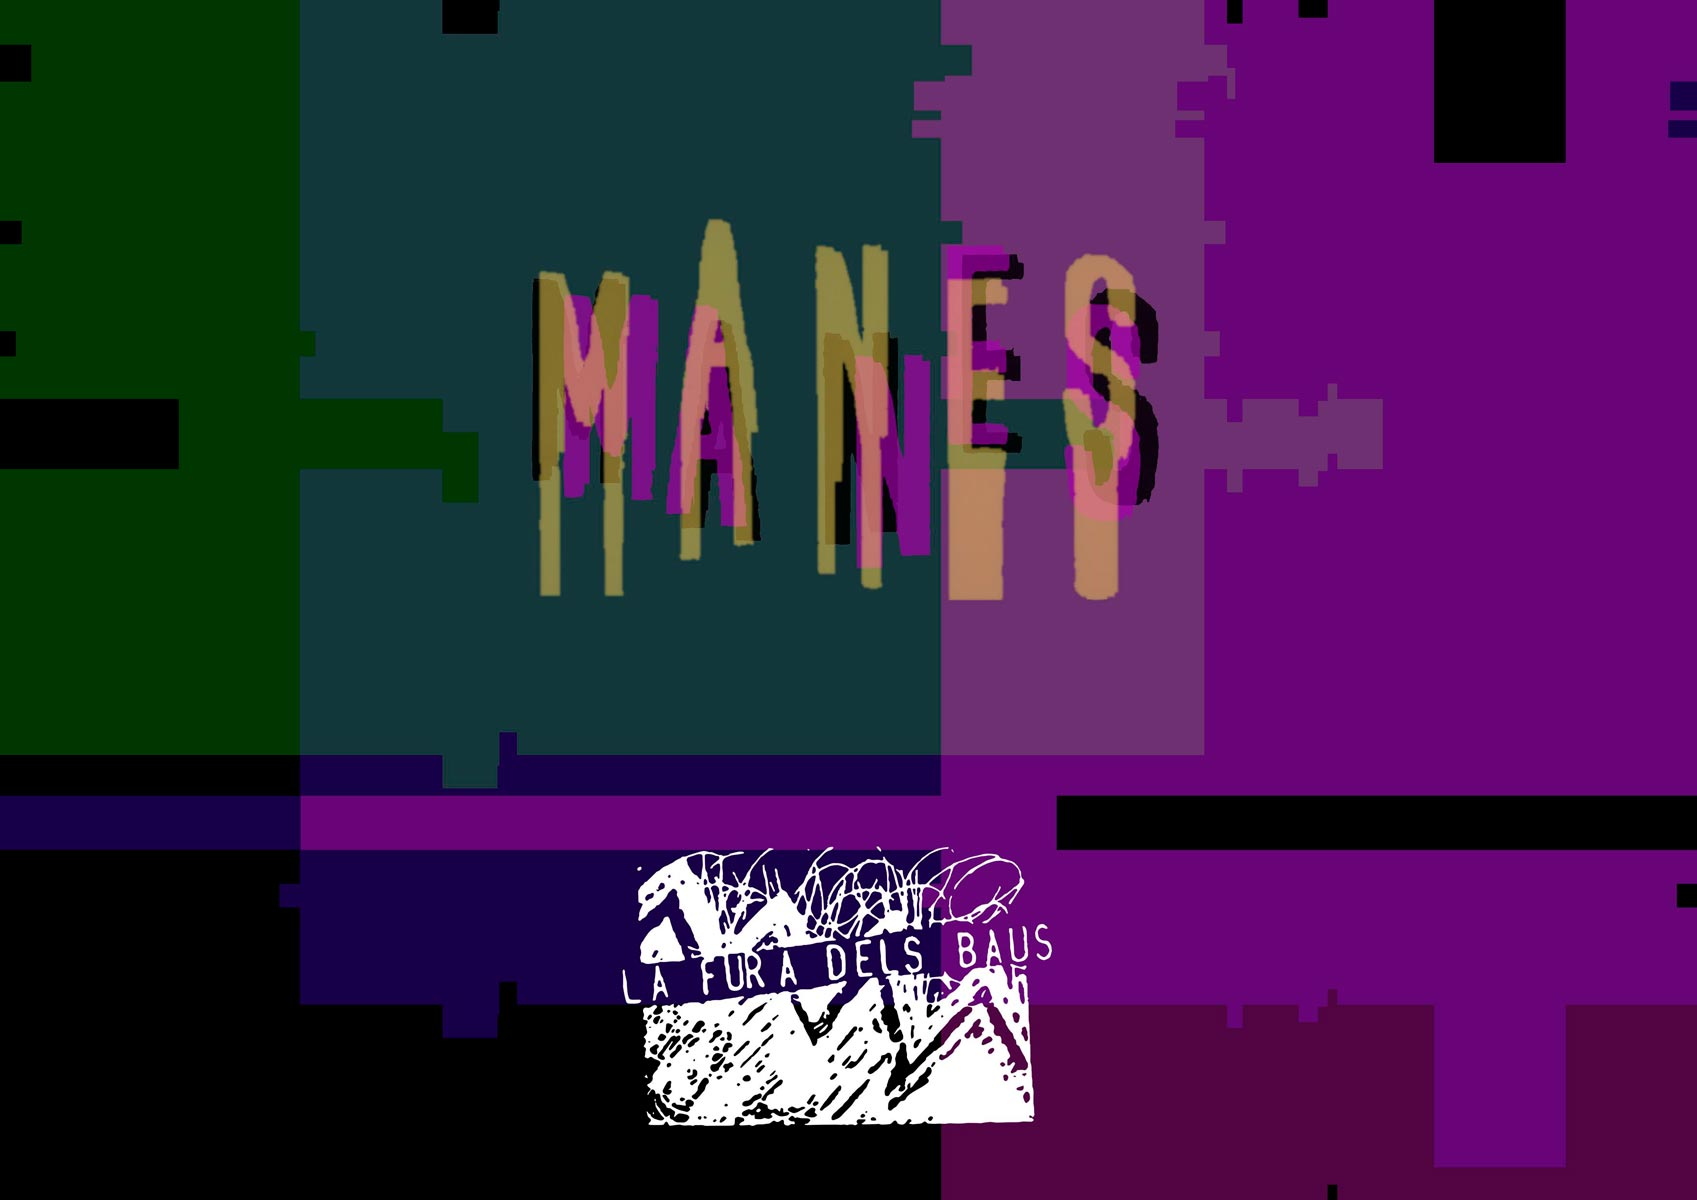 Manes - CARTEL